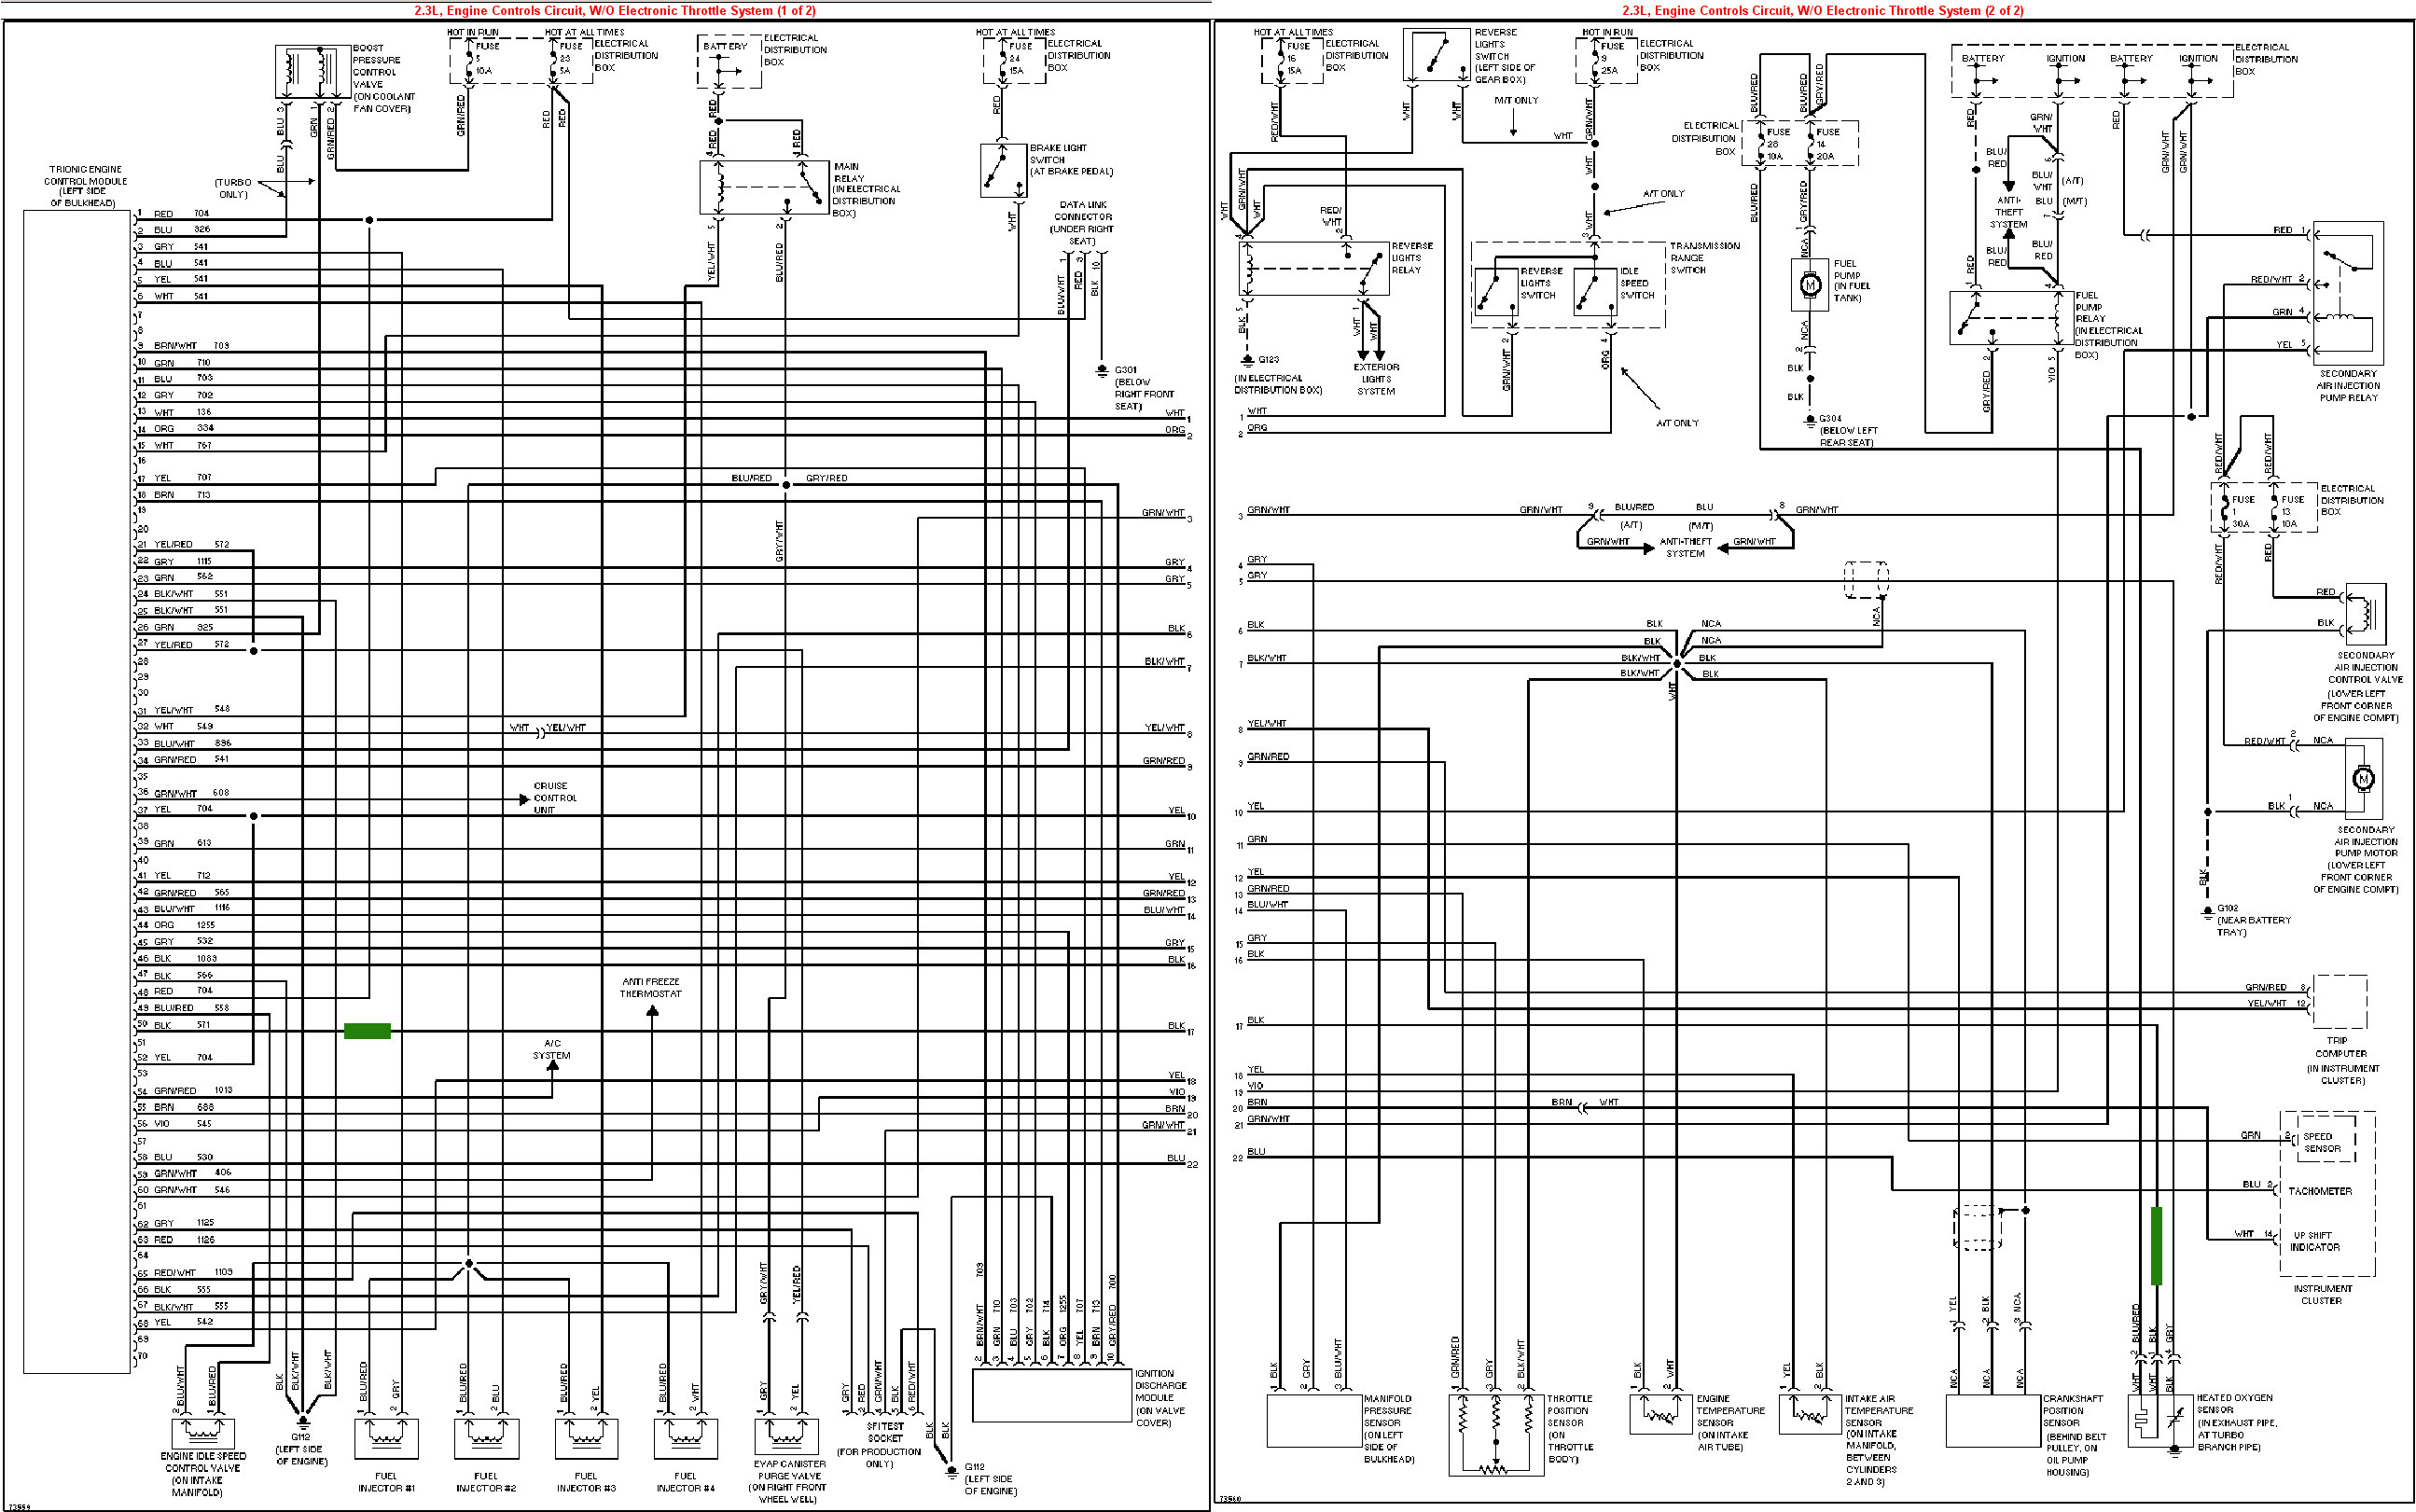 Ktm Ac Wiring Diagrams | Wiring Diagram Ktm Wiring Diagrams on dodge wiring diagram, garelli wiring diagram, beta wiring diagram, ossa wiring diagram, bajaj wiring diagram, ariel wiring diagram, mitsubishi wiring diagram, international wiring diagram, cf moto wiring diagram, kia wiring diagram, tomos wiring diagram, norton wiring diagram, mercury wiring diagram, nissan wiring diagram, honda wiring diagram, husaberg wiring diagram, ajs wiring diagram, thor wiring diagram, naza wiring diagram, kawasaki wiring diagram,